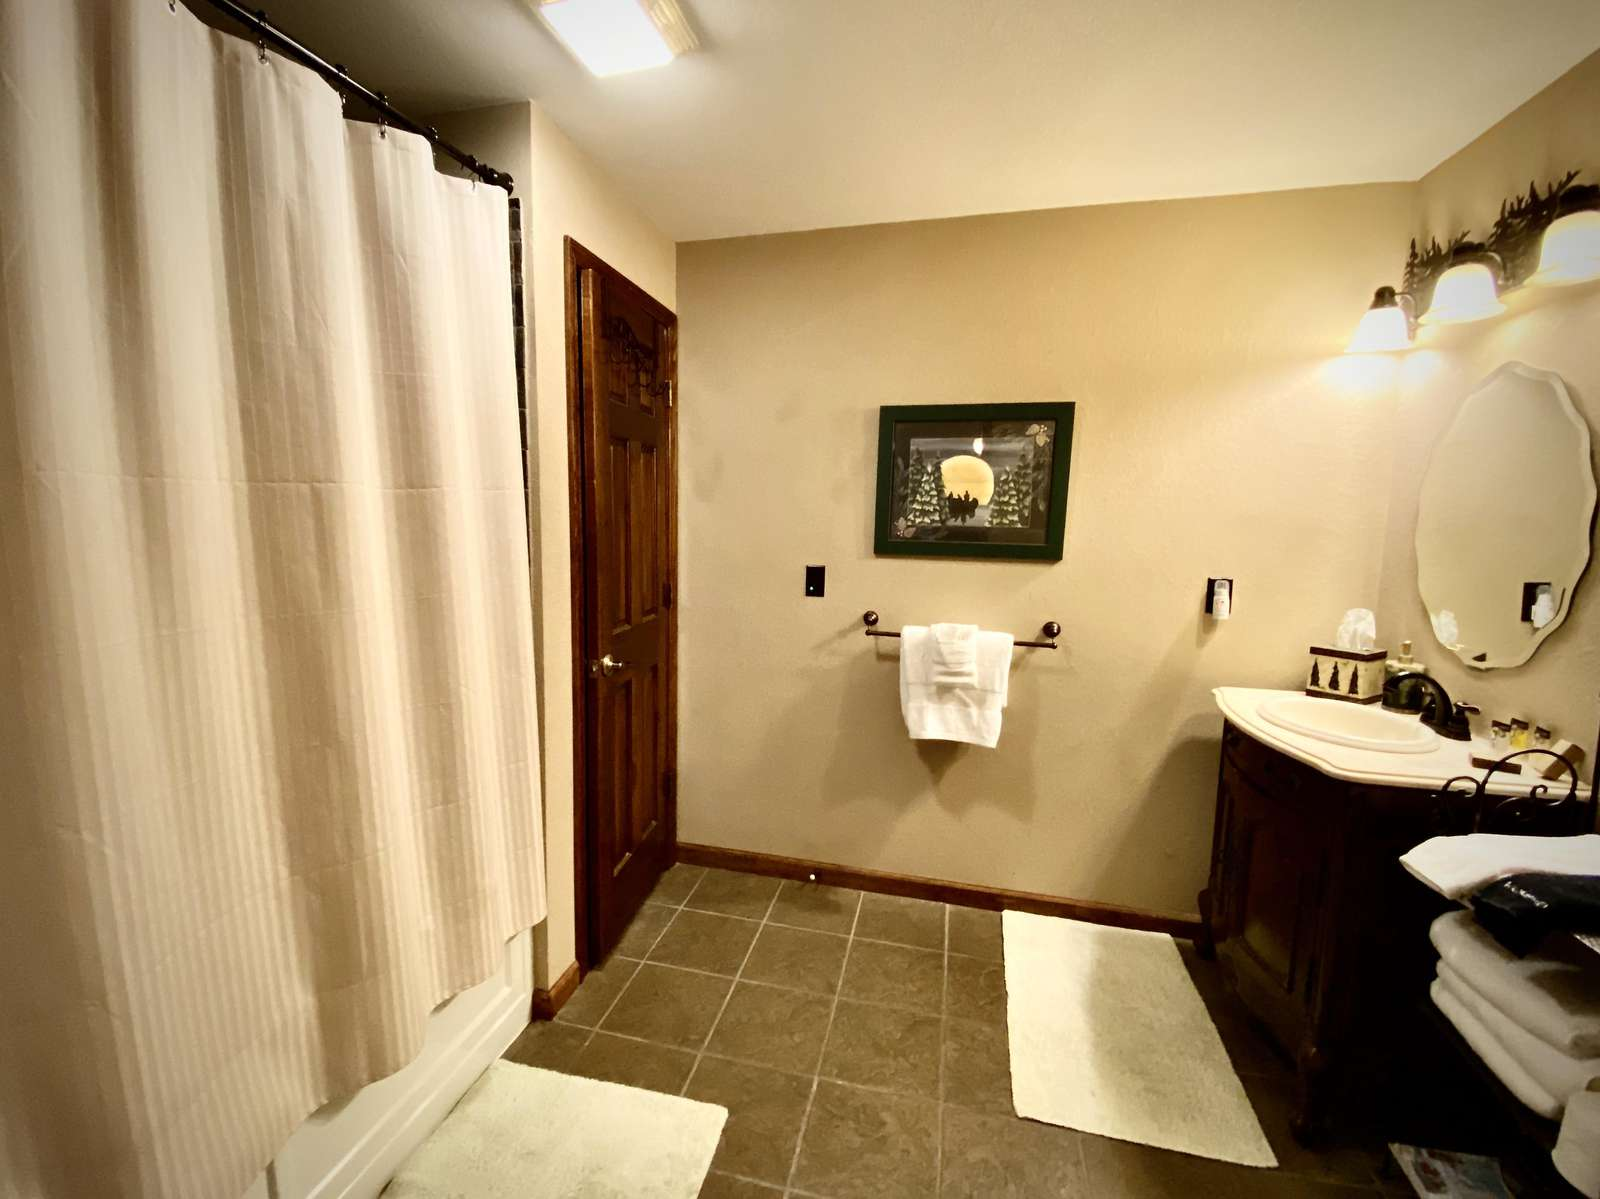 One of 3 Full Bathrooms (Master Bathroom offers a Jetted Tub)